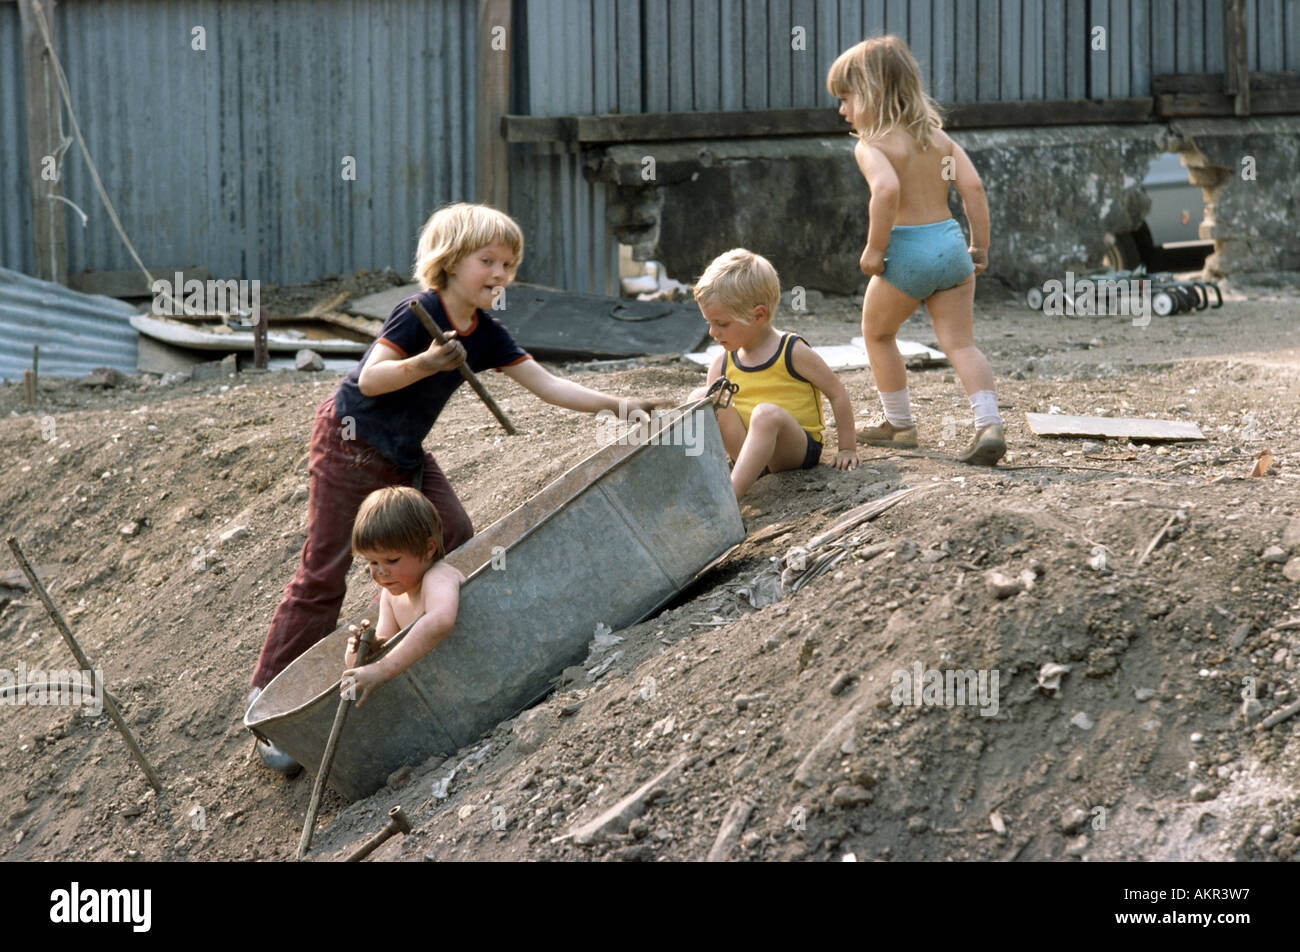 young children playing outside in the 1970's - Stock Image